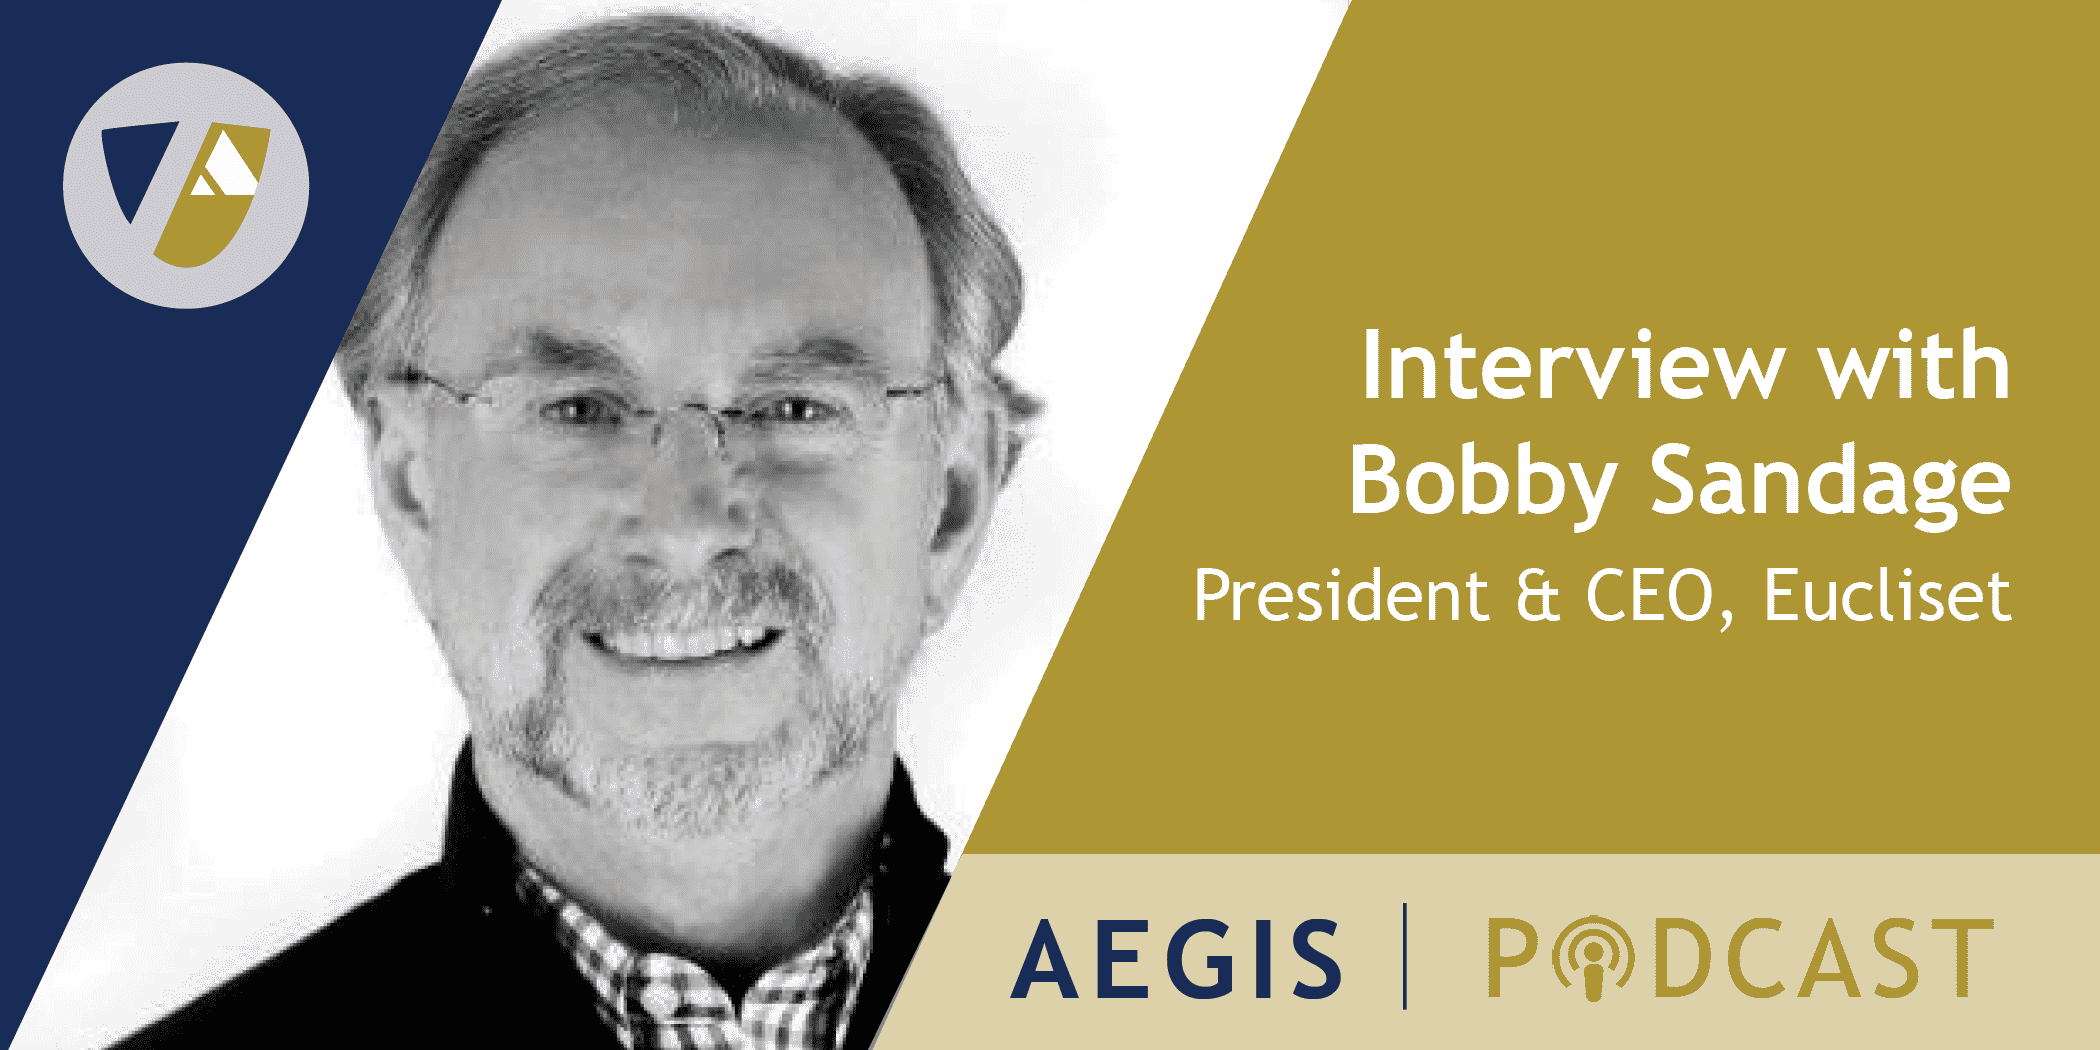 The AEGIS Podcast: Interview with Bobby Sandage, Entrepreneur